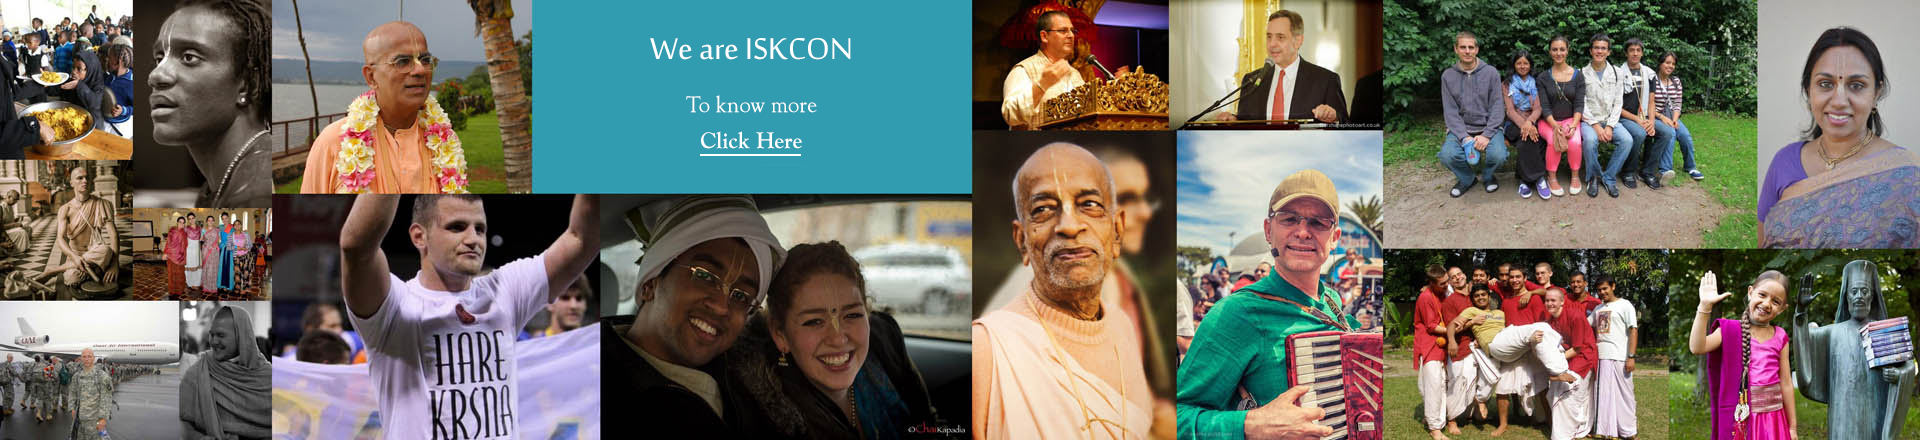 What is ISKCON?